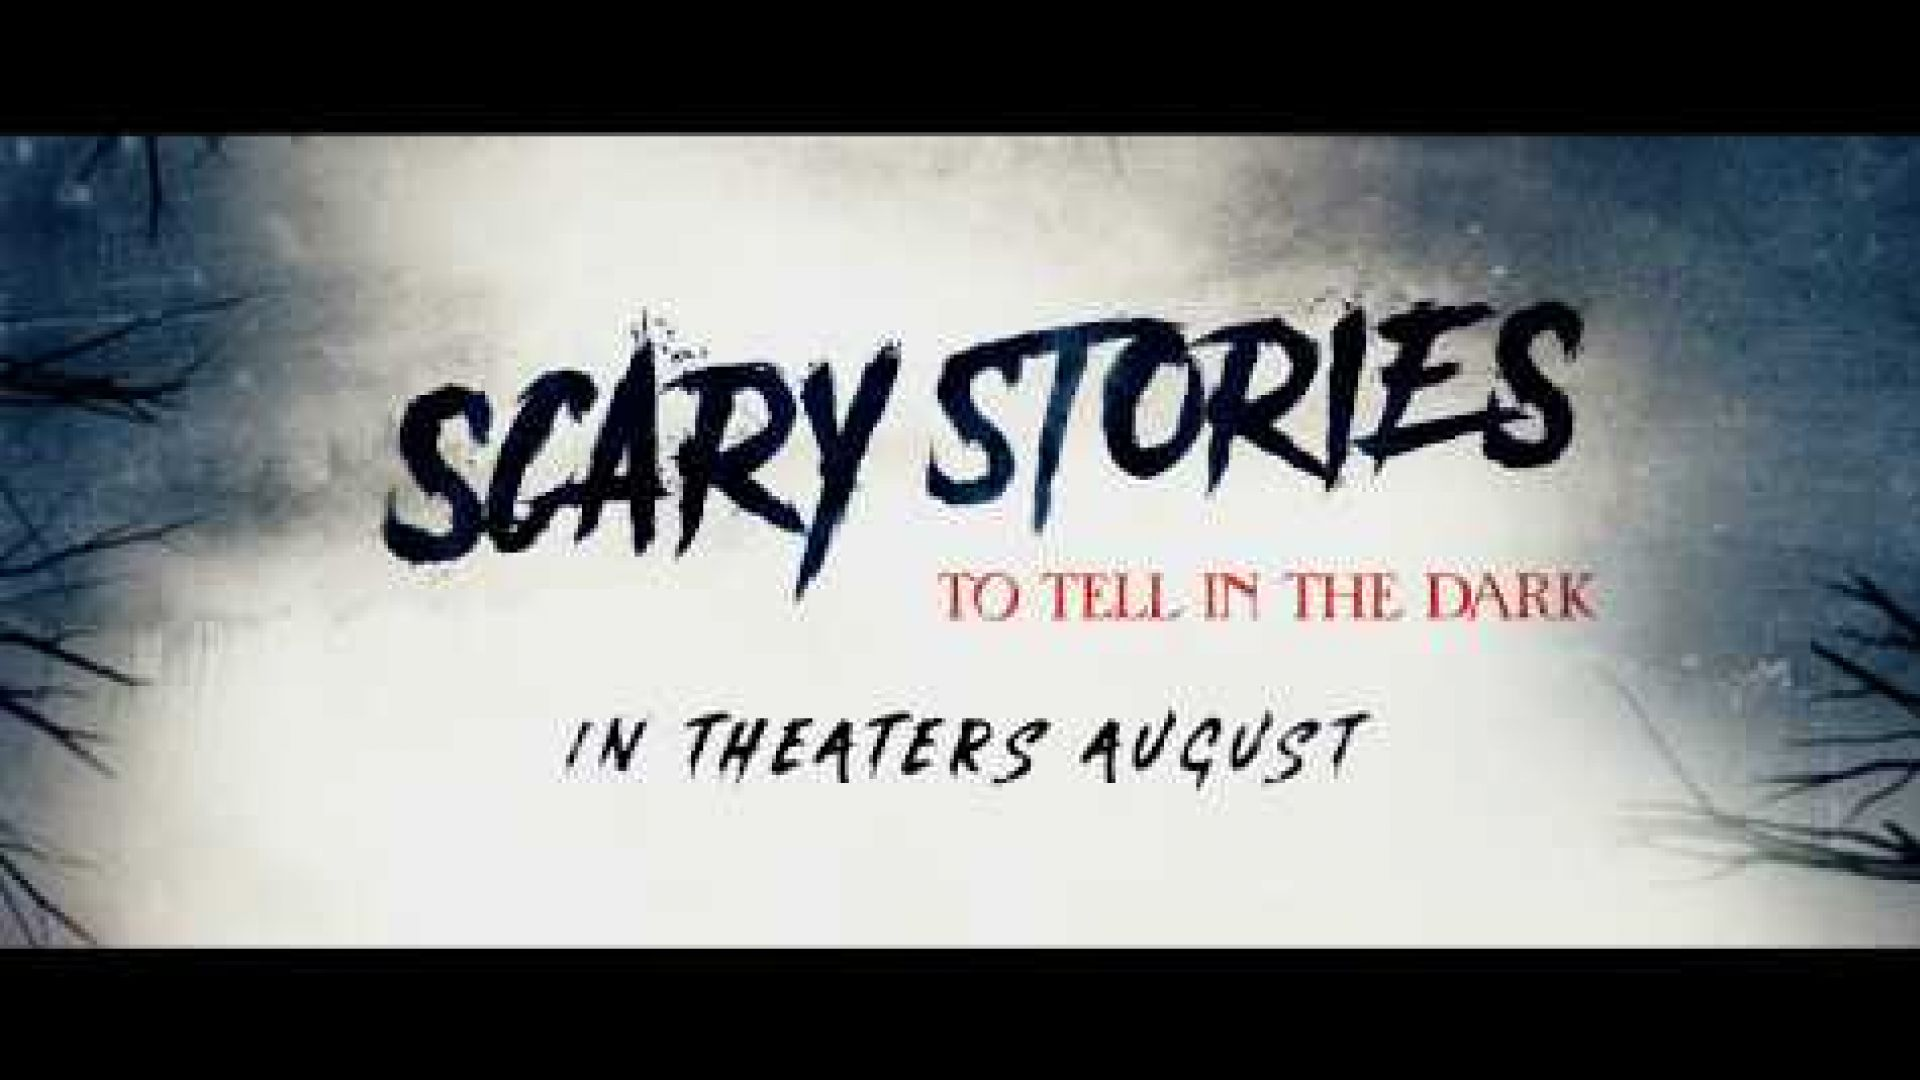 'Scary Stories To Tell In The Dark' - Jangly Man